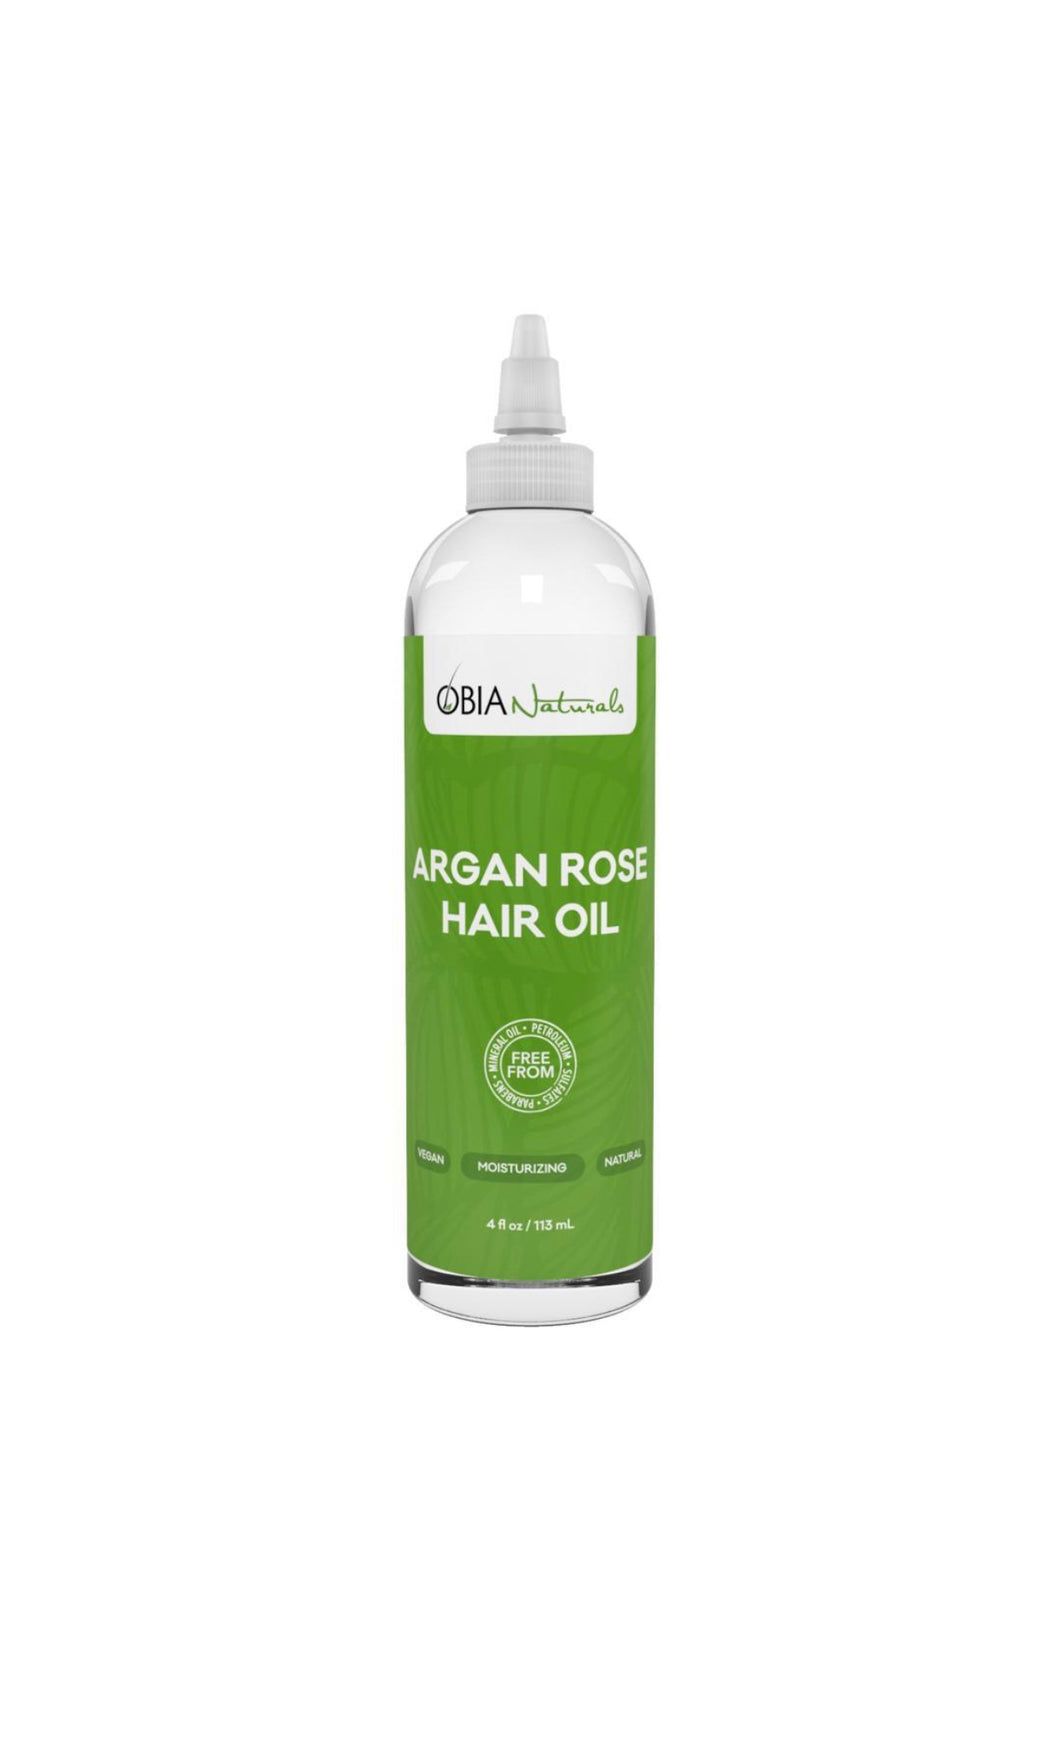 OBIA Naturals Arian Rose Hair Oil 4 fl oz